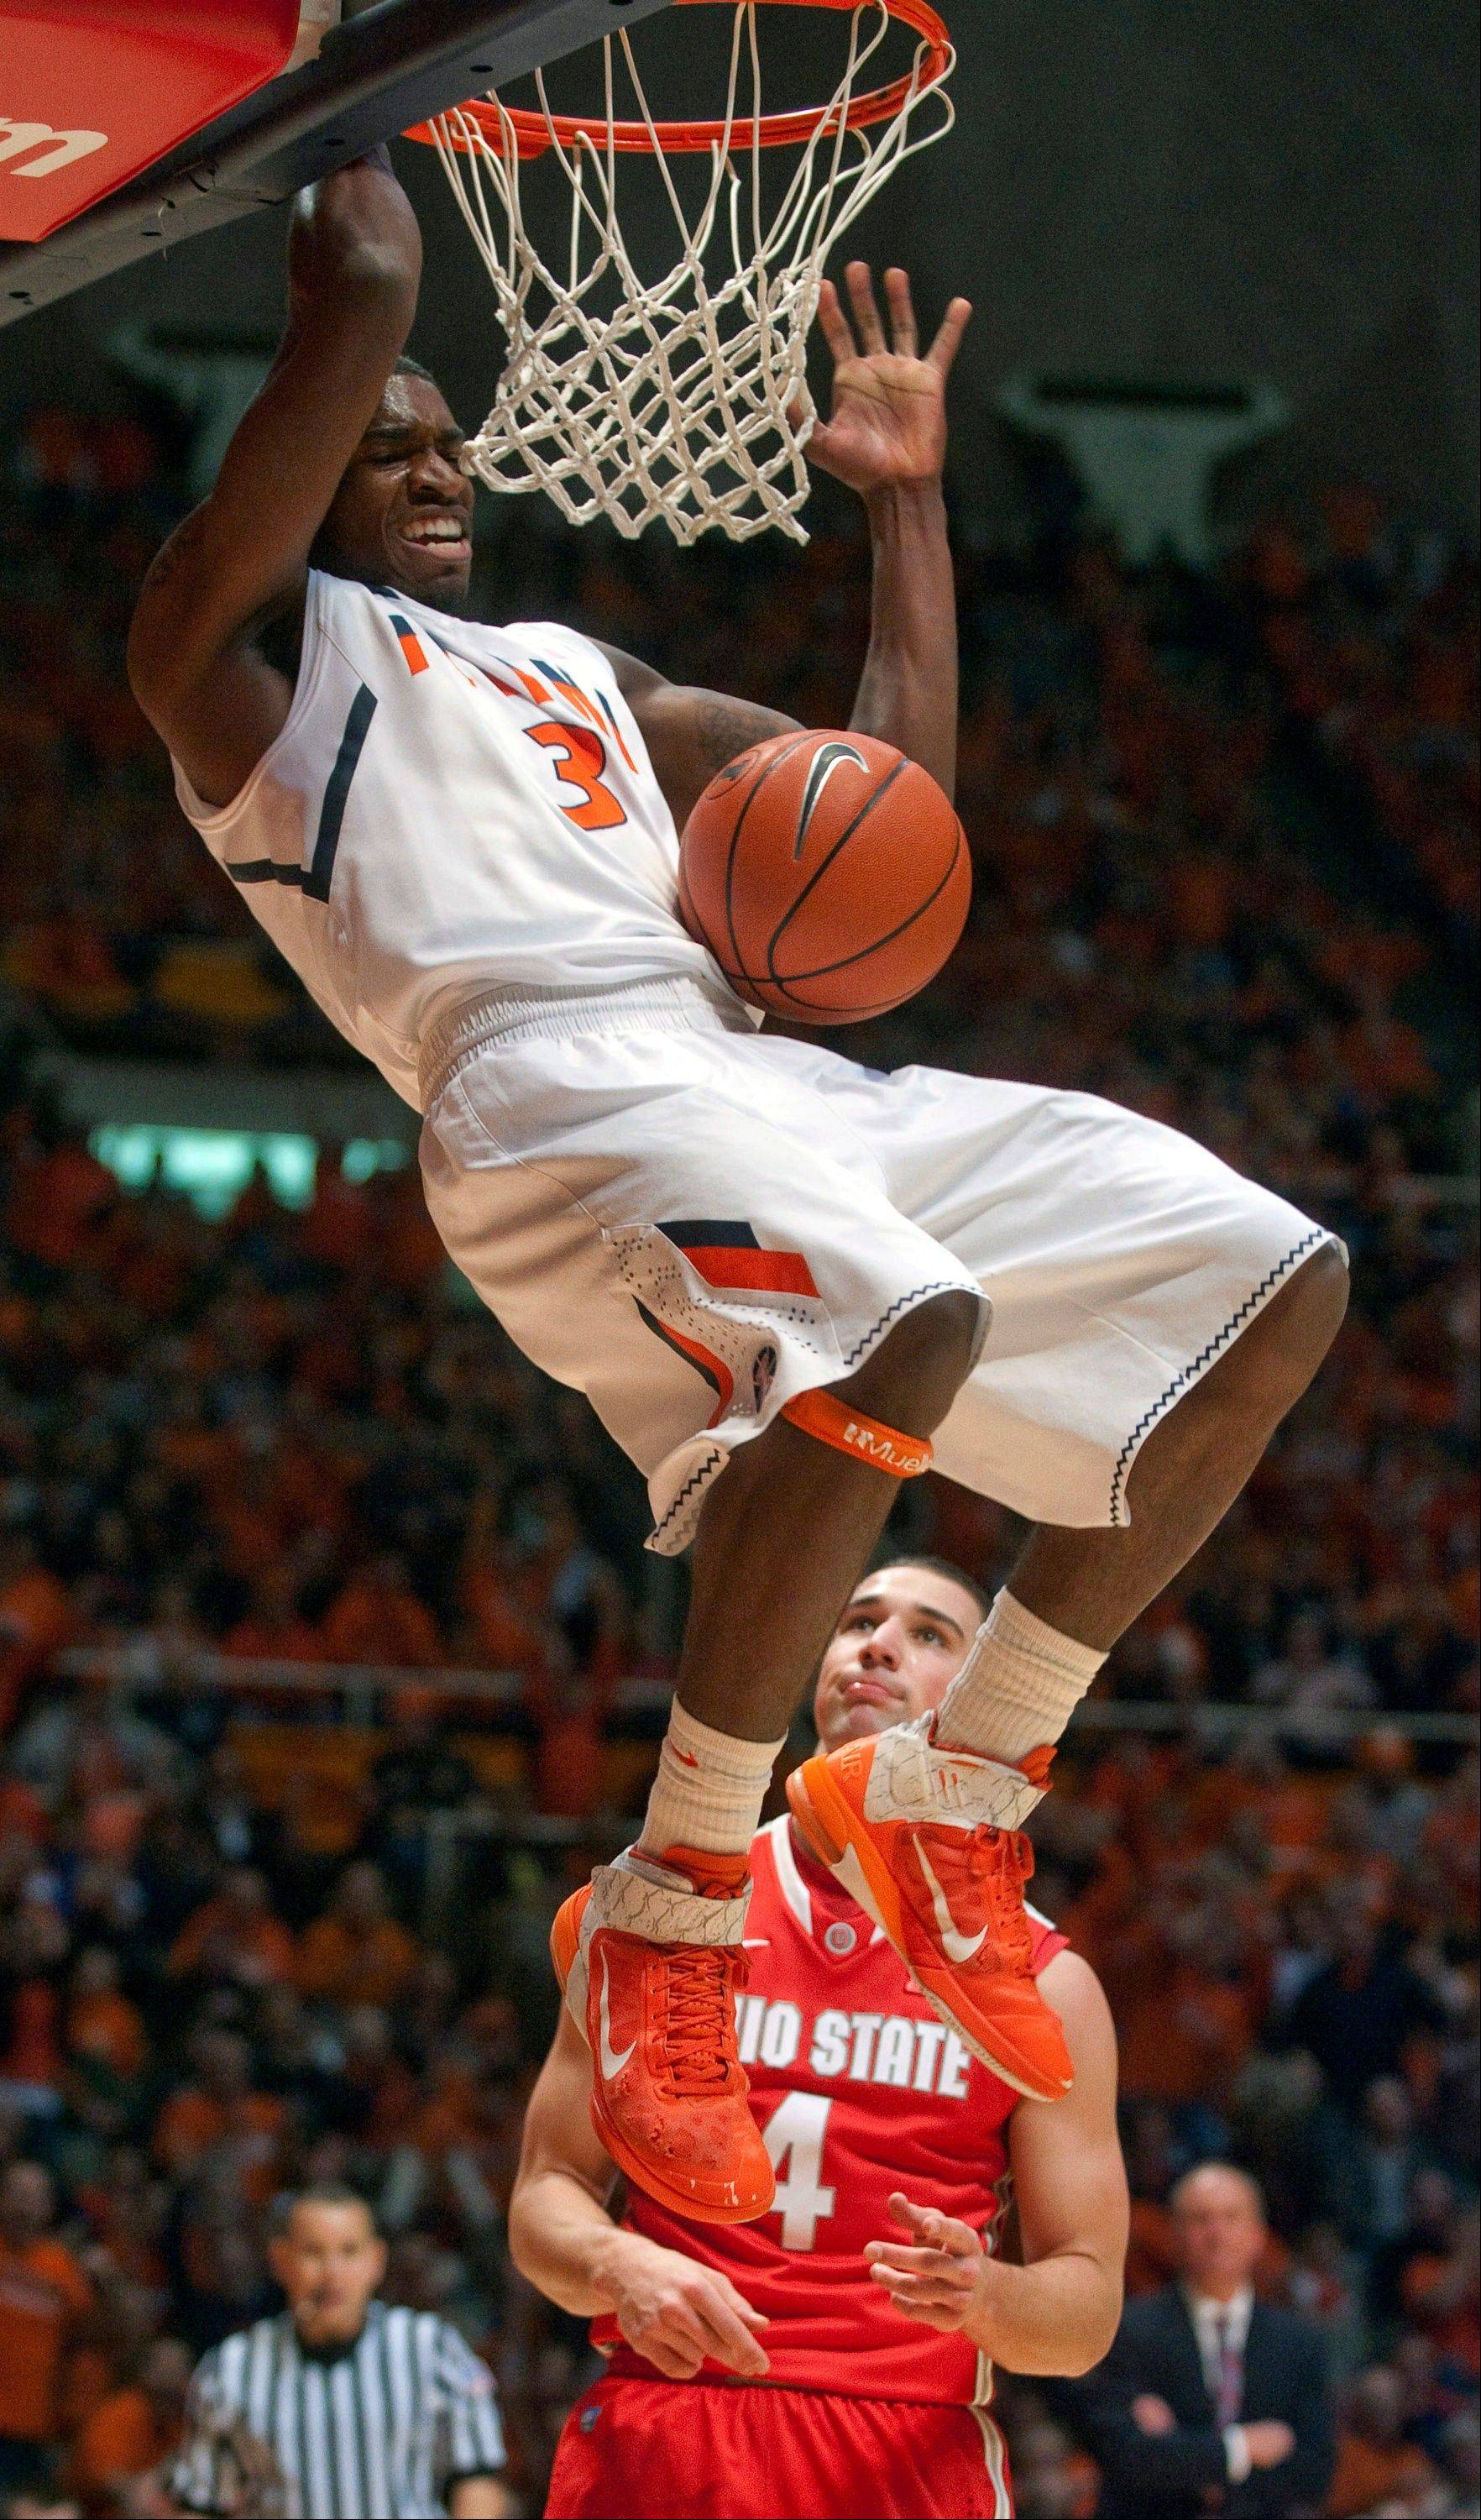 Illinois guard Brandon Paul dunks during his team�s upset of No. 8 Ohio State Saturday in Champaign. After a loss to unranked Purdue and the big upset over the Buckeyes, the Illini are now ranked No. 12 in the country by The Associated Press.